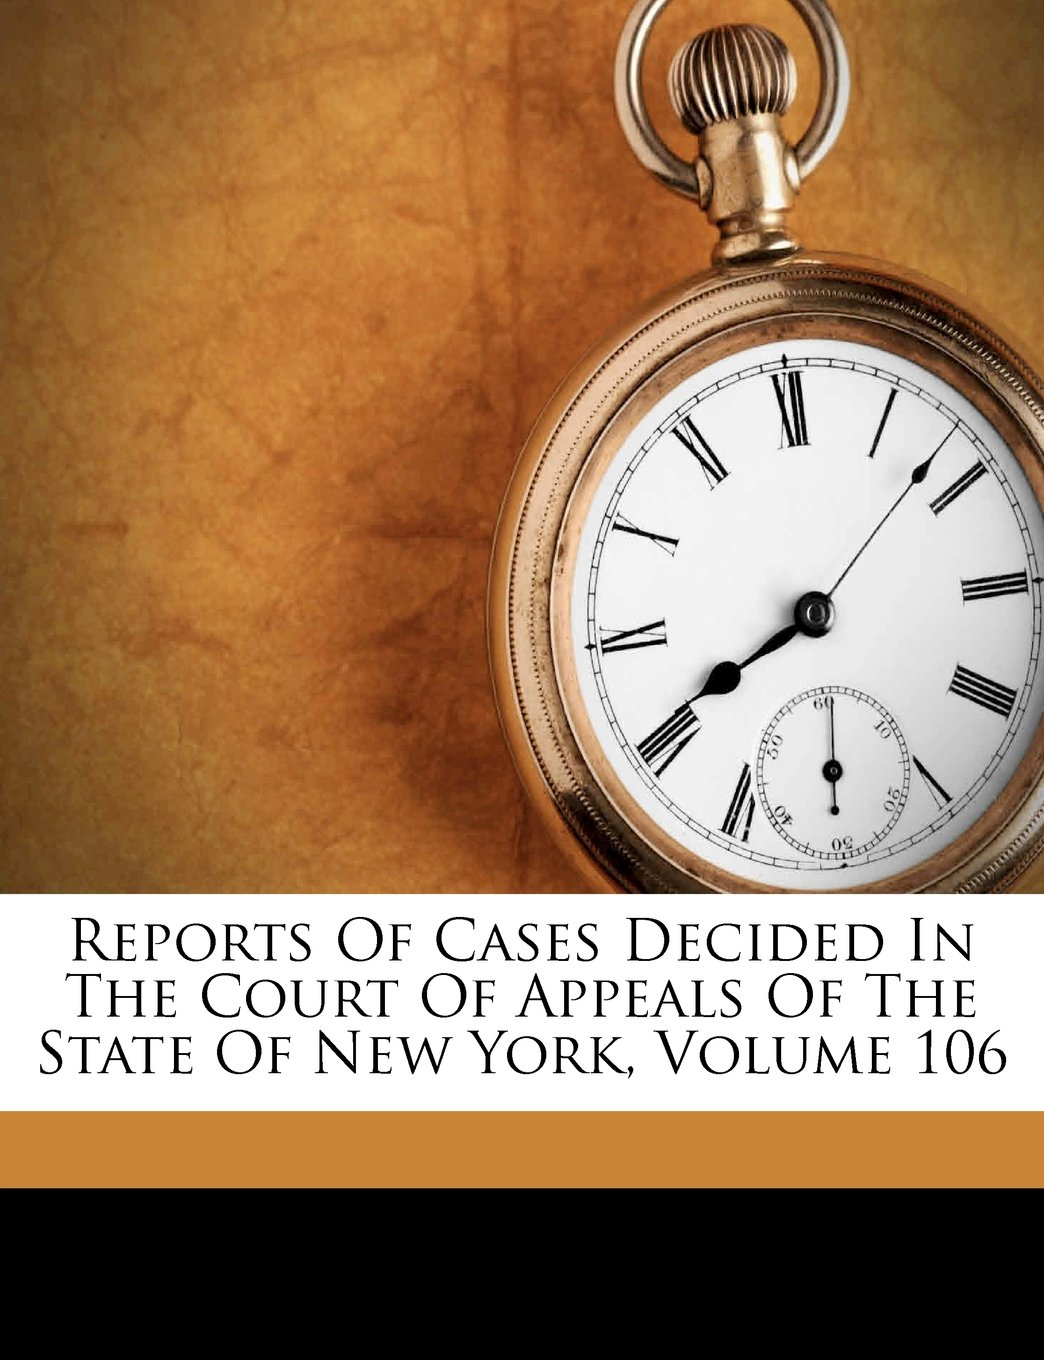 Reports Of Cases Decided In The Court Of Appeals Of The State Of New York, Volume 106 pdf